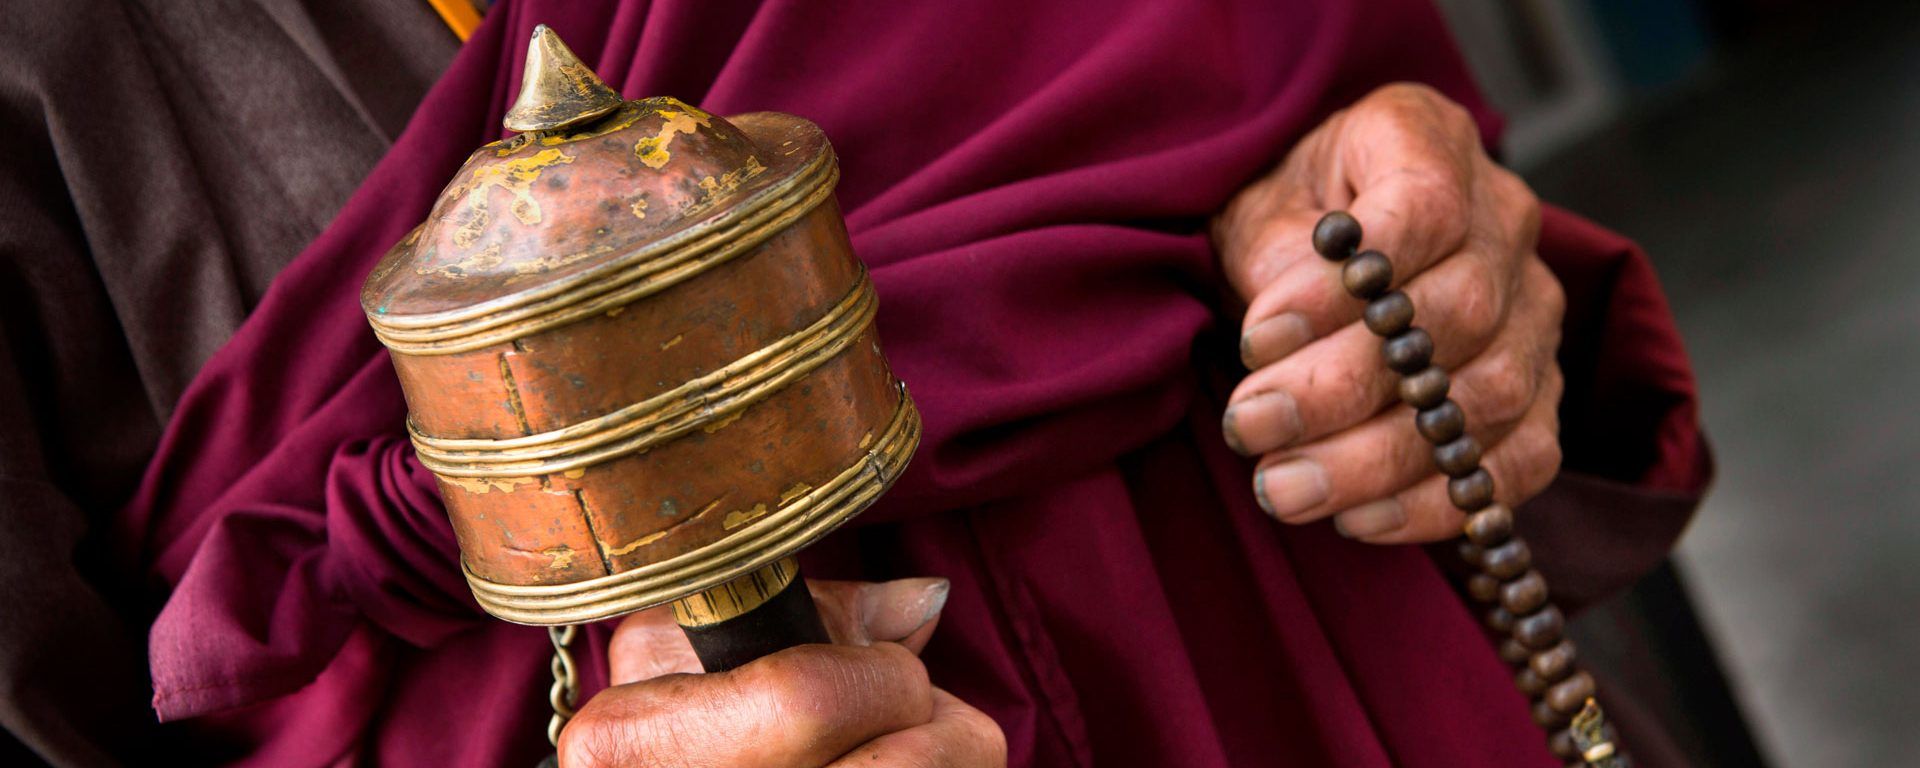 Hands of old monk holding prayer wheel and beads, Rangjung Monastery, Trashigang, Eastern Bhutan